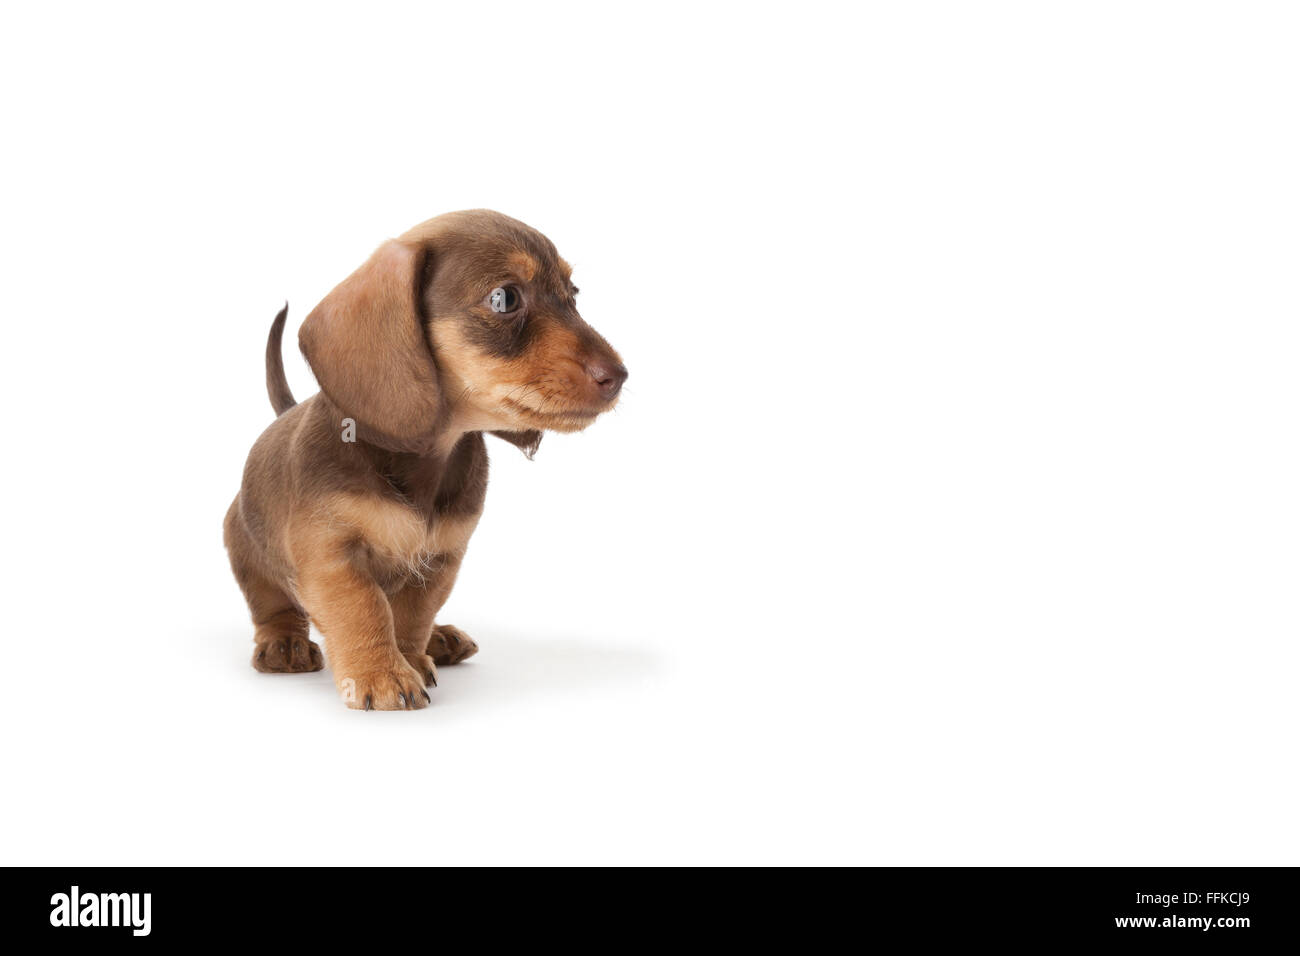 Wire-haired dachshund puppy on white background with space for text - Stock Image